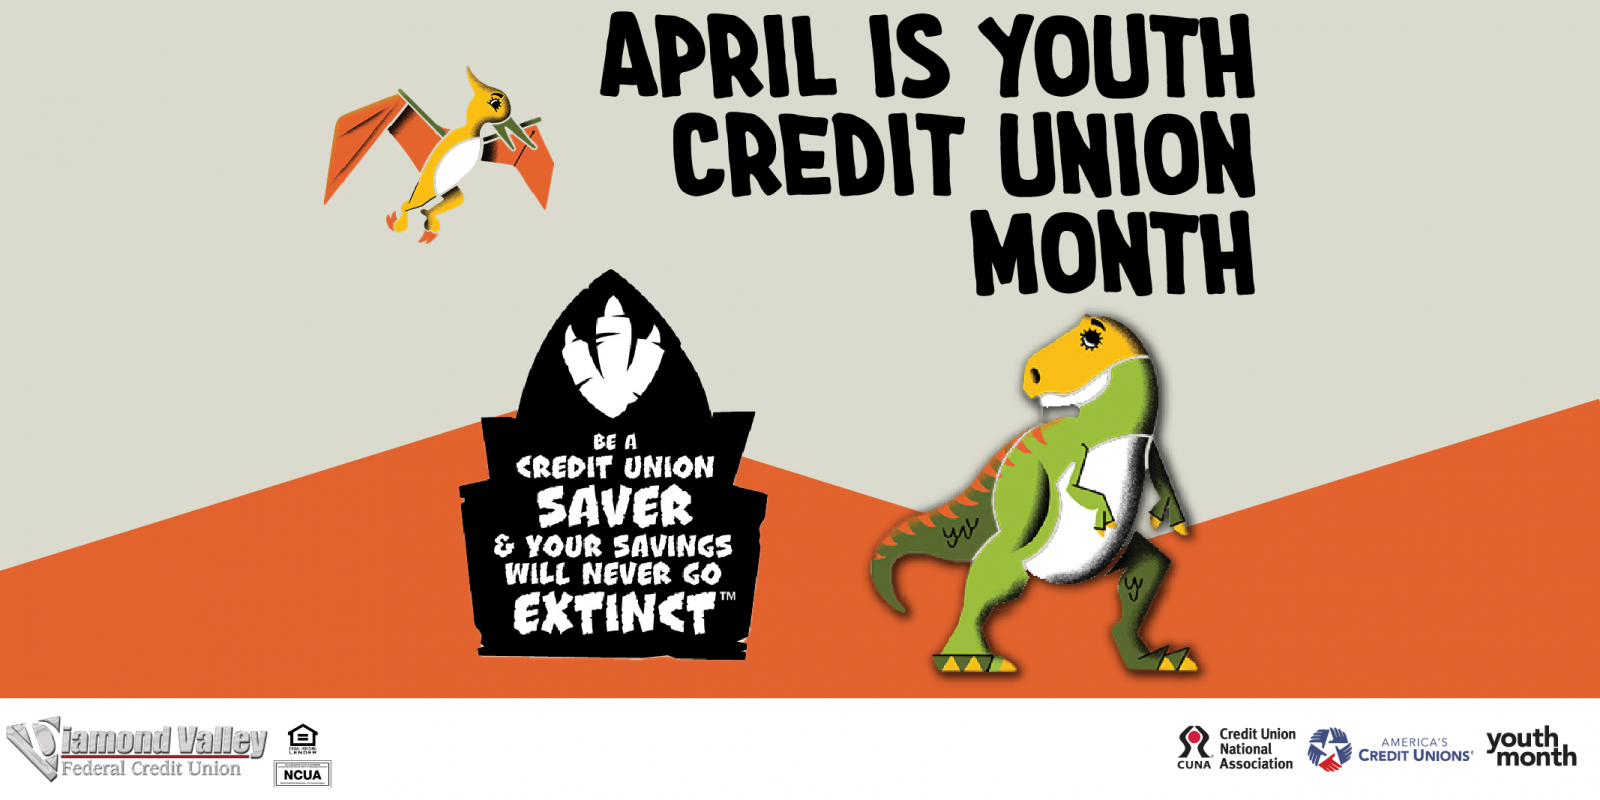 April is Youth Credit Union Month. Teach your kids the value of savings with Divy's Savings Account at Diamond Valley!